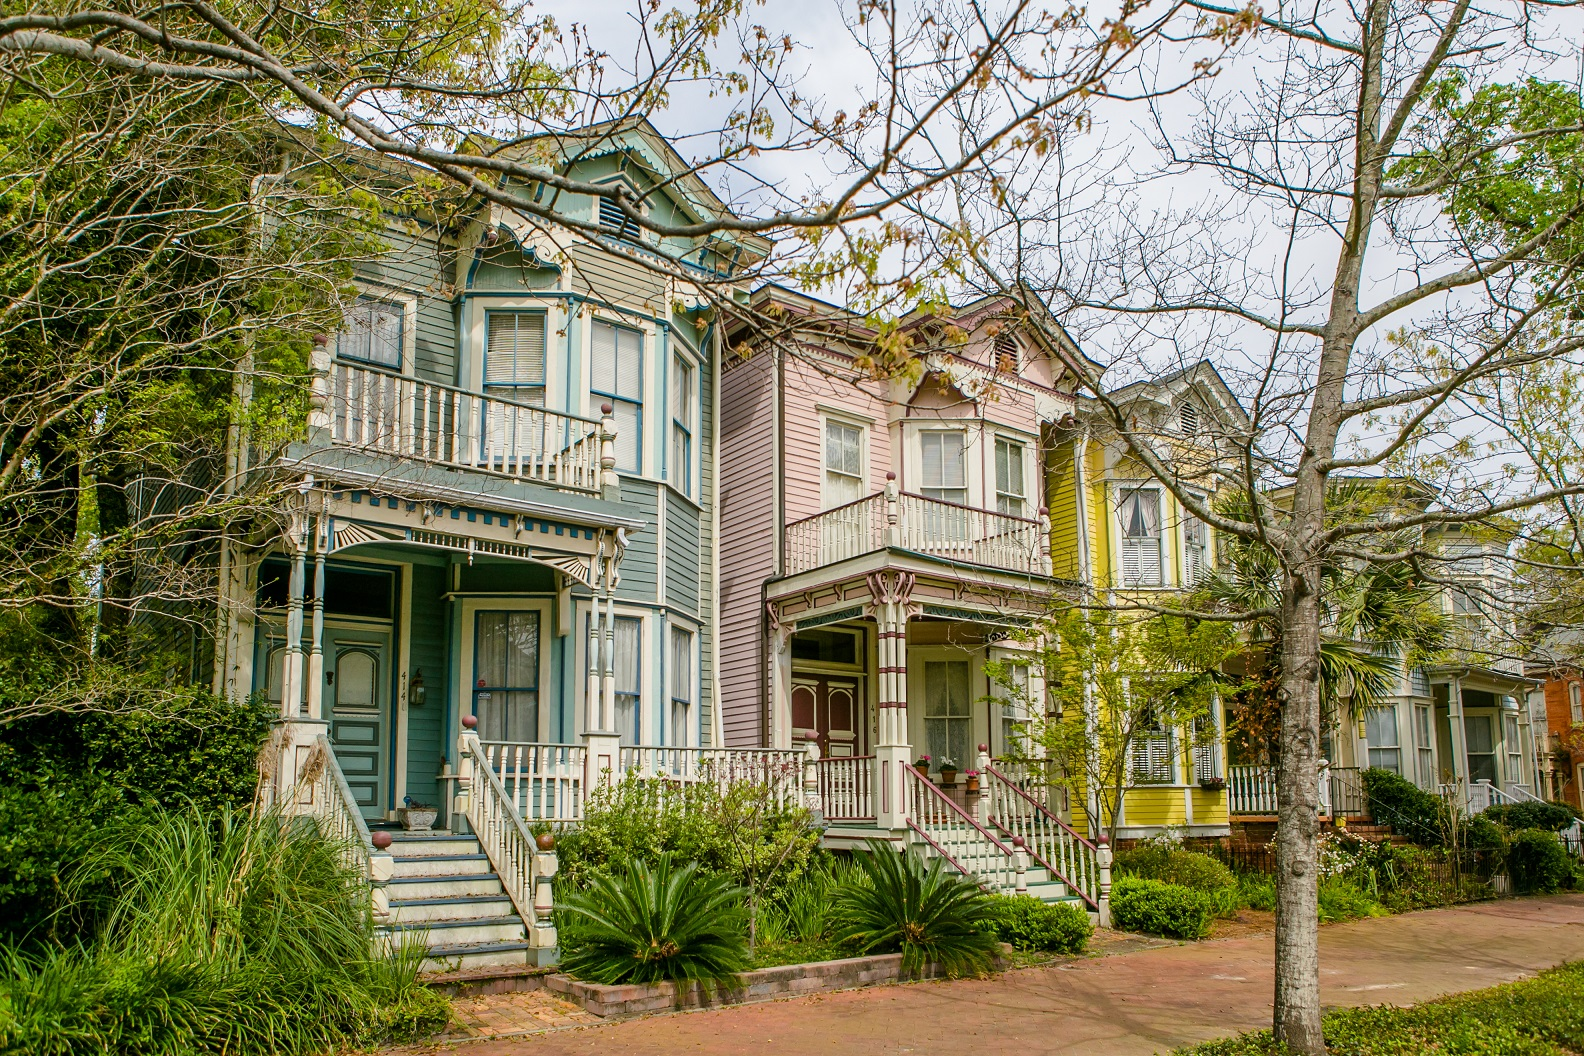 South's Most Colorful Streets E. Huntingdon Street, Savannah (GA)